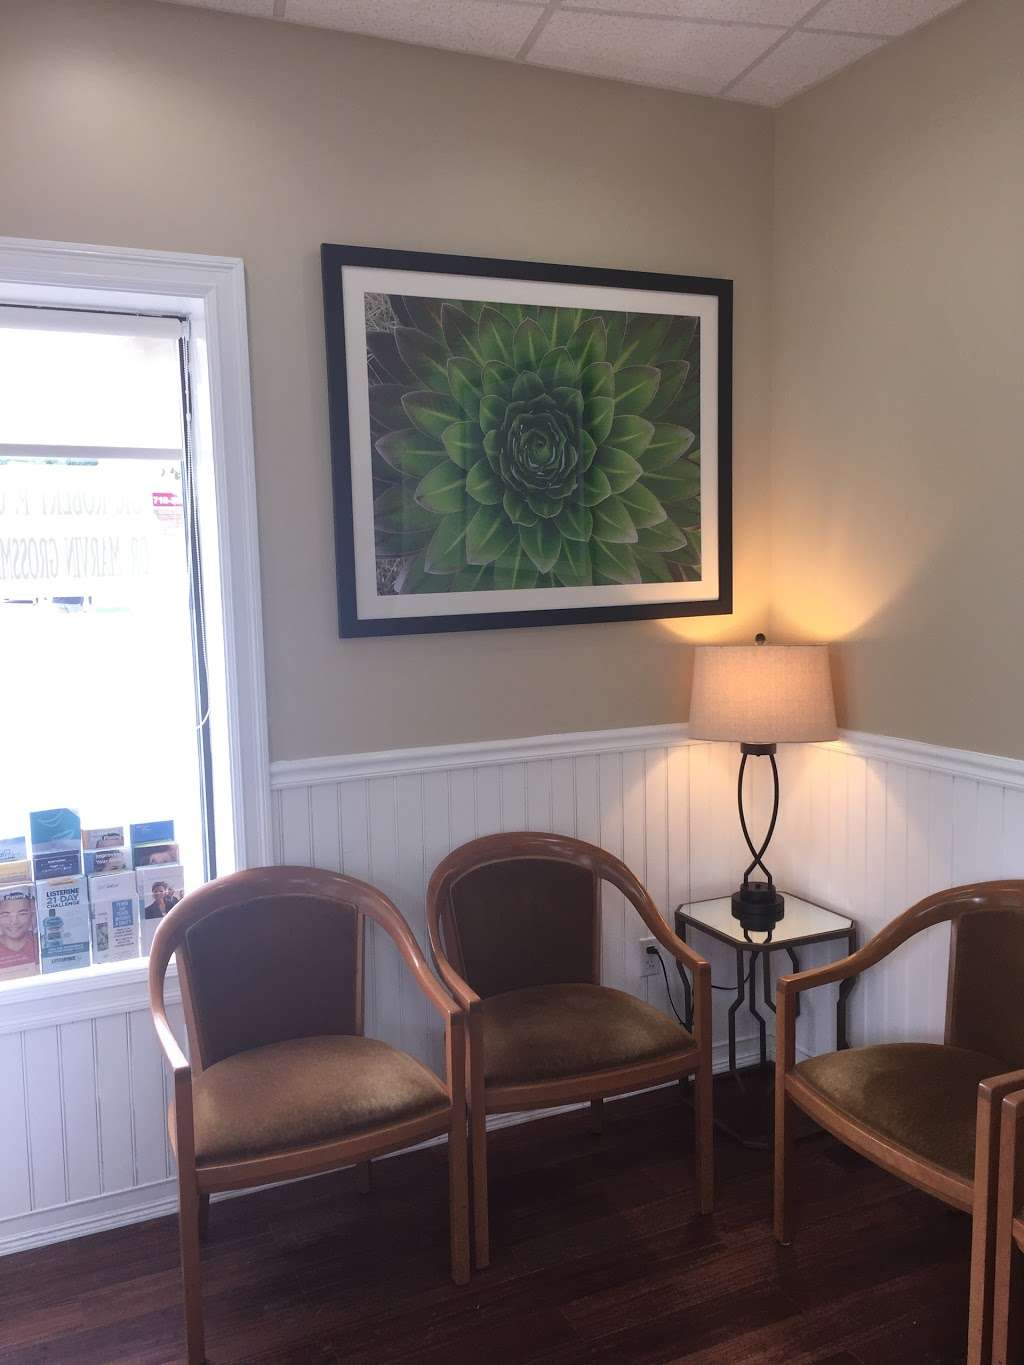 Robert Cukier, DDS - dentist  | Photo 3 of 10 | Address: 76-01 Myrtle Ave, Glendale, NY 11385, USA | Phone: (718) 386-2655